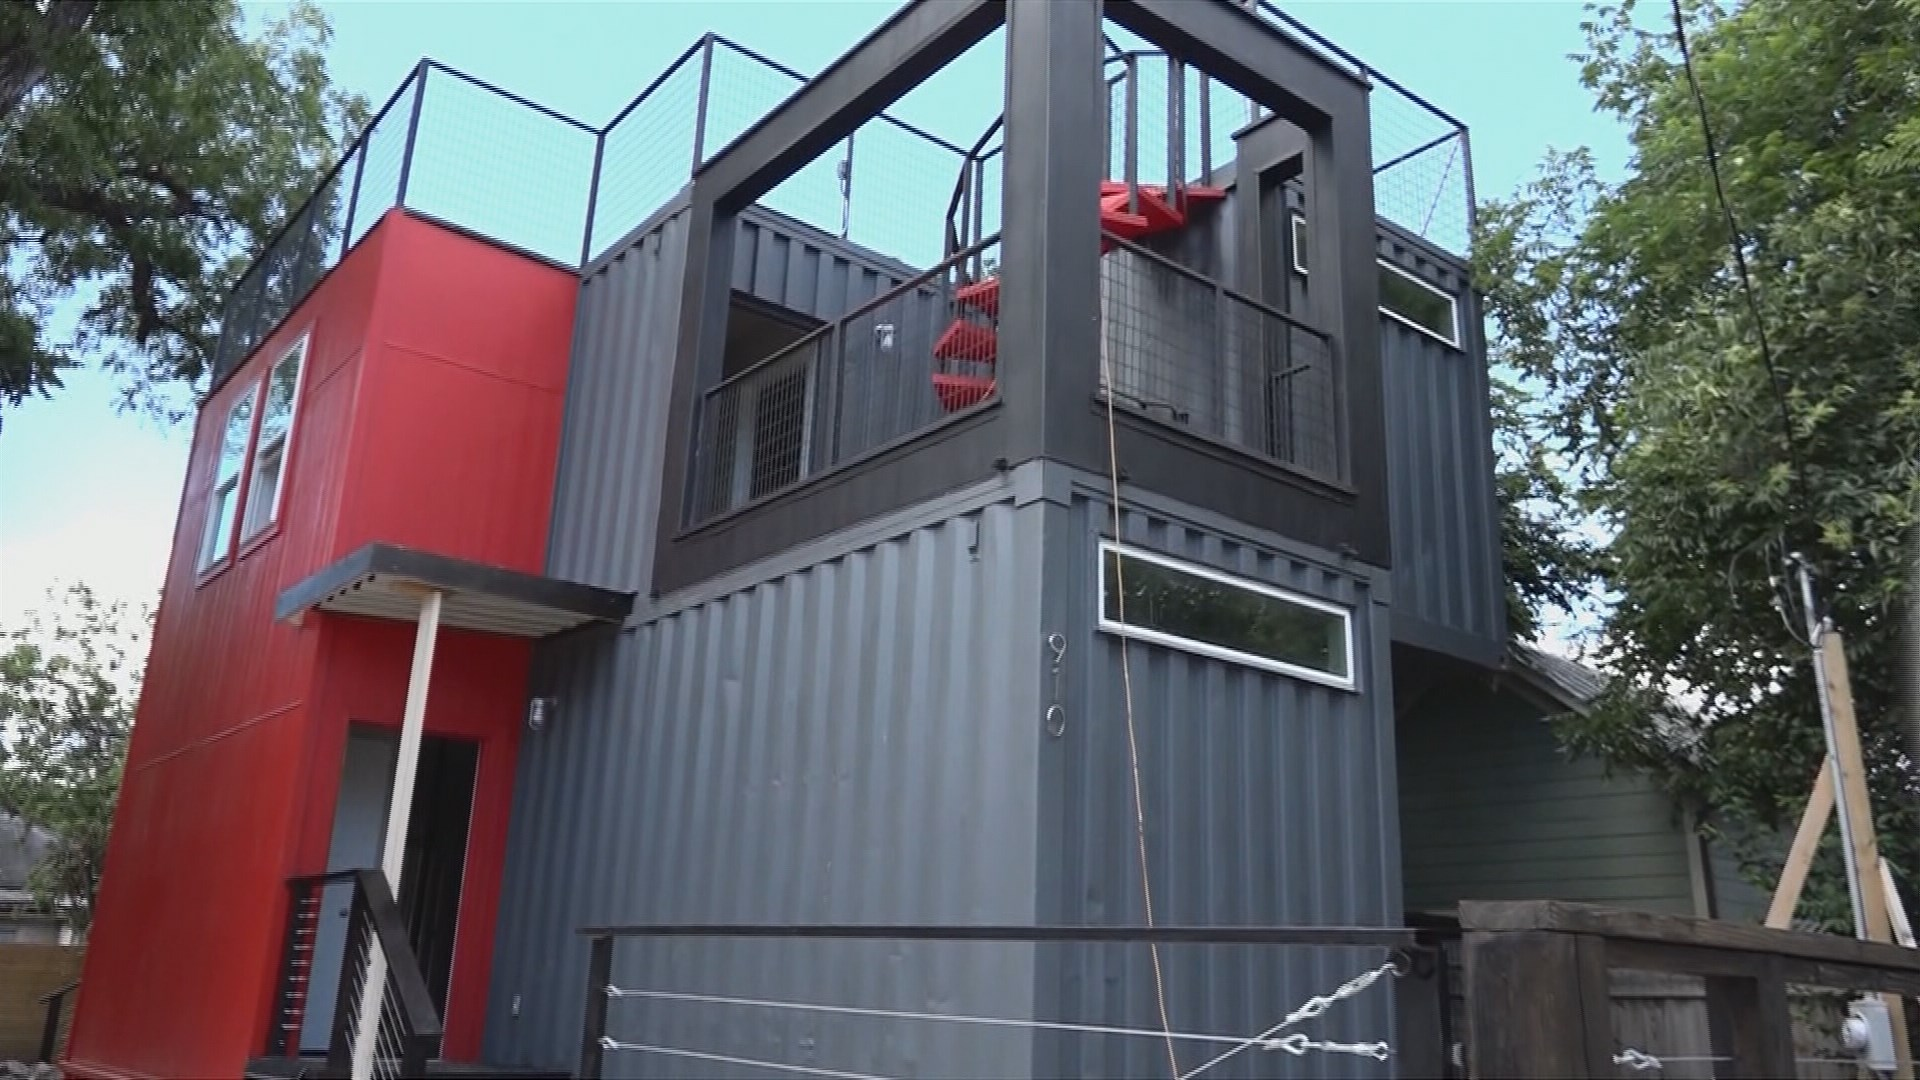 shipping container home hits san antonio market for 300k. Black Bedroom Furniture Sets. Home Design Ideas